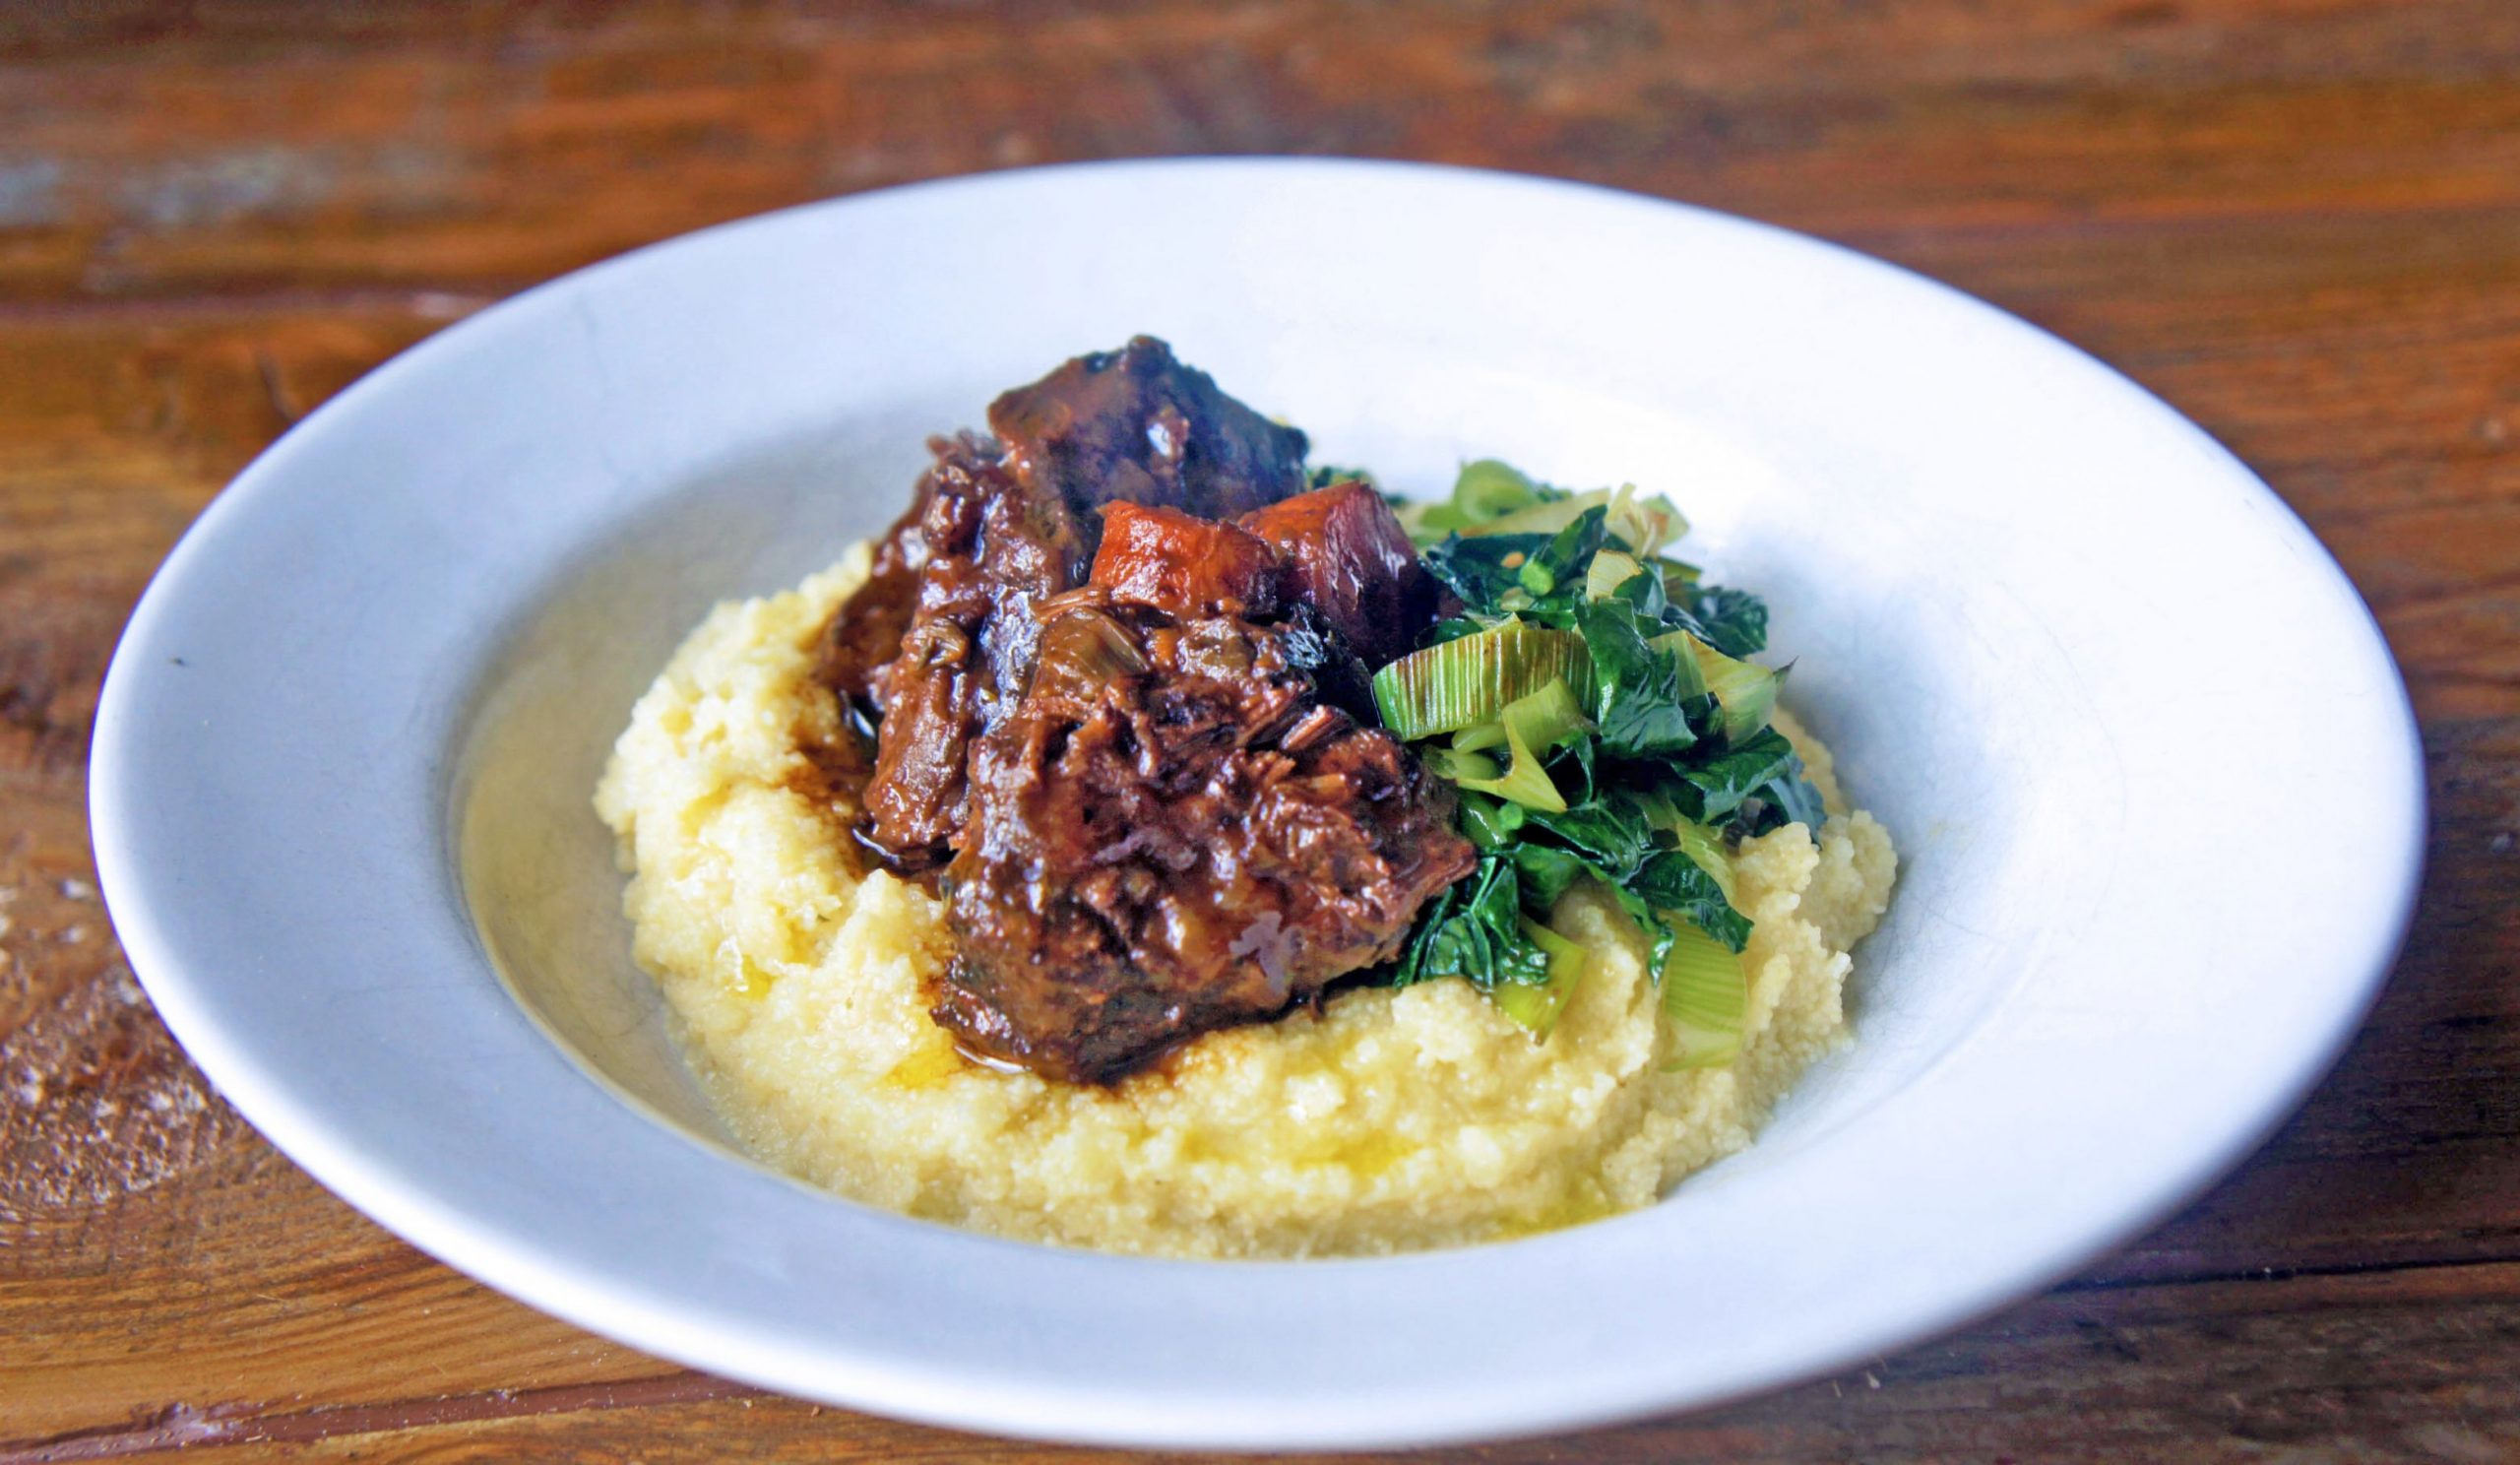 Slow-cooked braised ox cheeks in red wine - Recipes Beef Cheeks